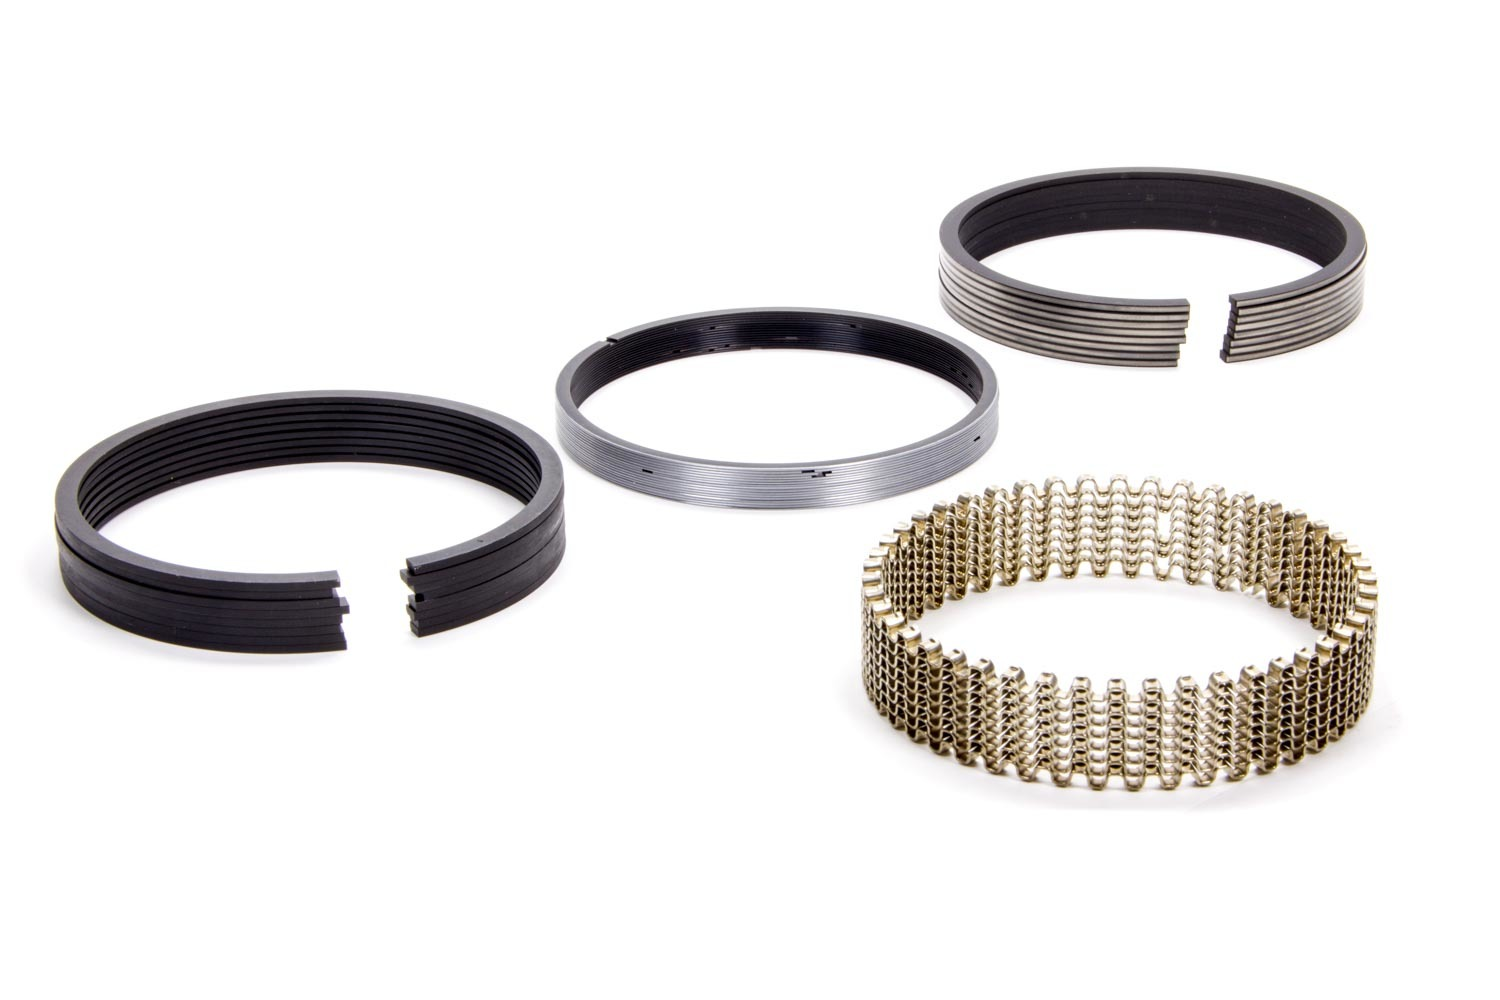 Hastings 2M139060 Piston Rings, 4.060 in Bore, 5/64 x 5/64 x 3/16 in Thick, Standard Tension, Moly, 8 Cylinder, Kit